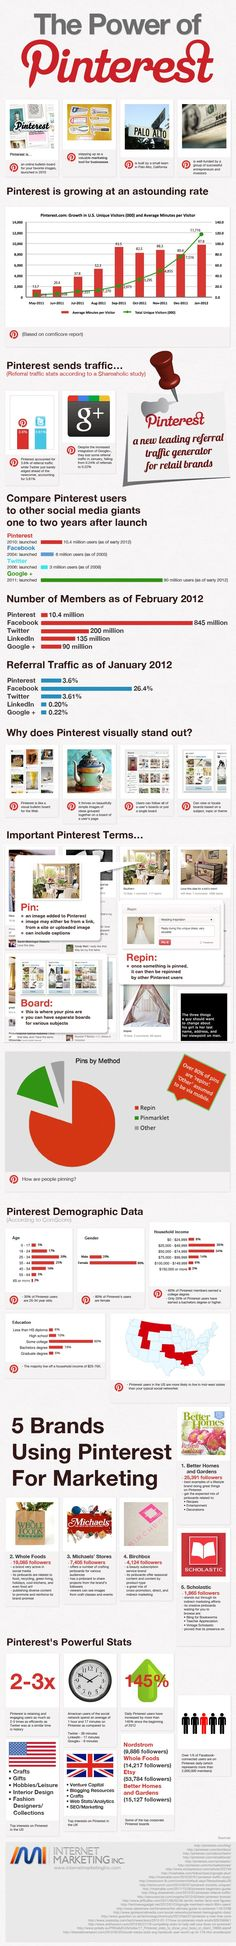 #Pinterest users are still mostly #women